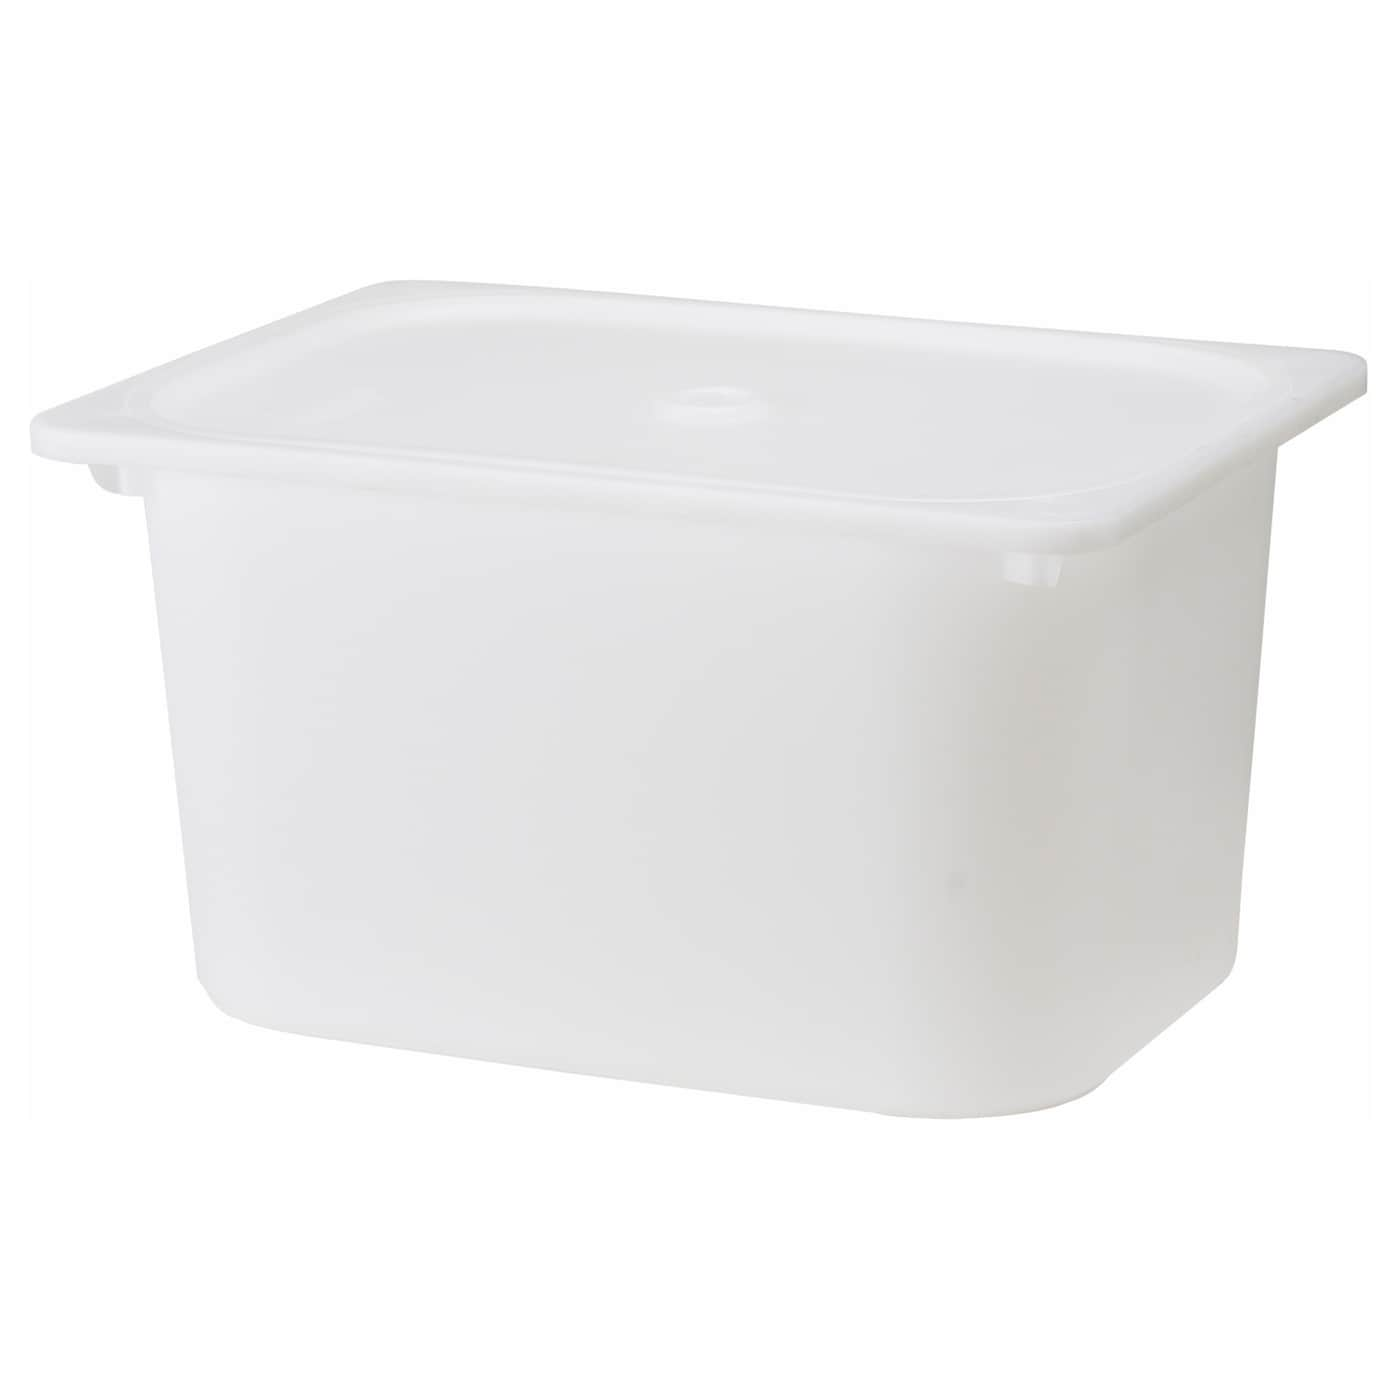 IKEA TROFAST box with lid Can be stacked when completed with a lid.